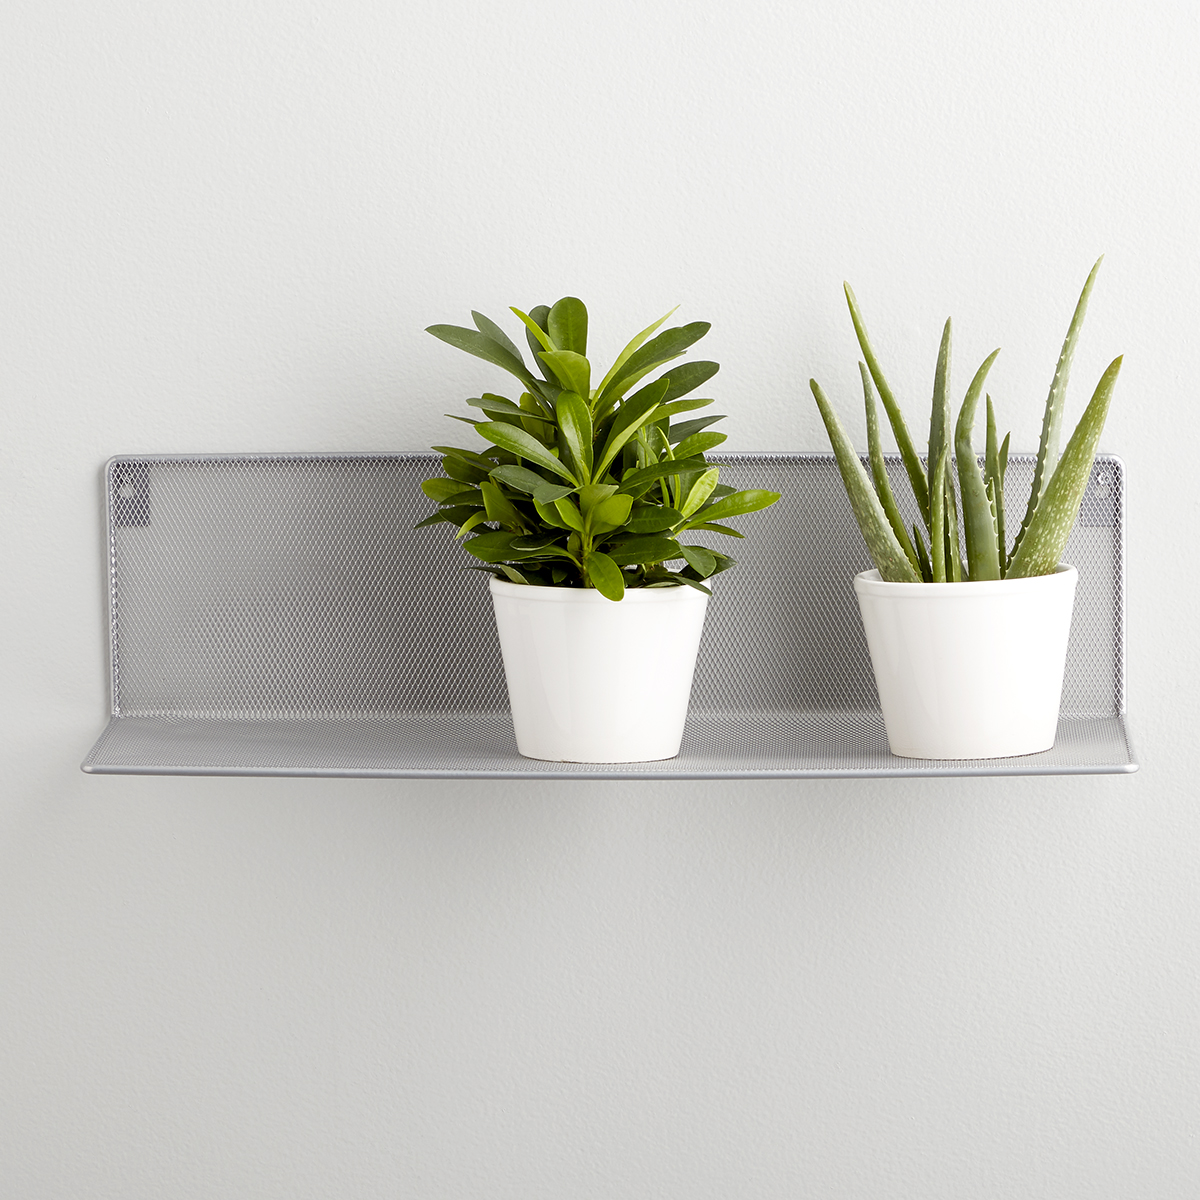 Silver Mesh Wall Shelf